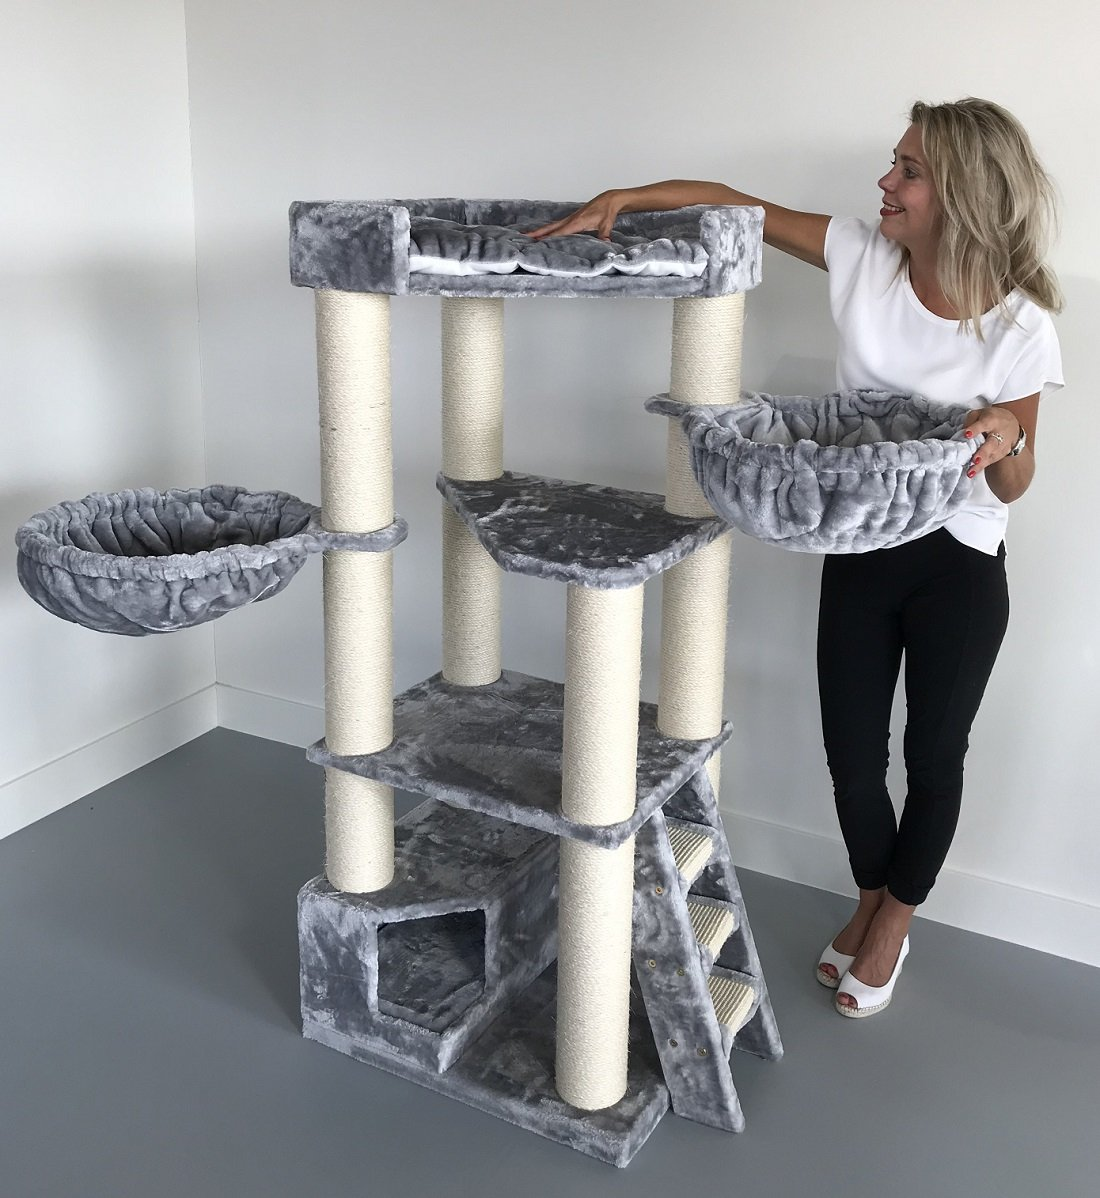 Cat Tree for Large Cats – Corner Cat XXL Light Grey – 59 inch 105 lbs 5 inch Ø poles – Total size 59x24x22 inch – Cat Scratcher scratching post activity center Cat Trees for large cats. Quality produc